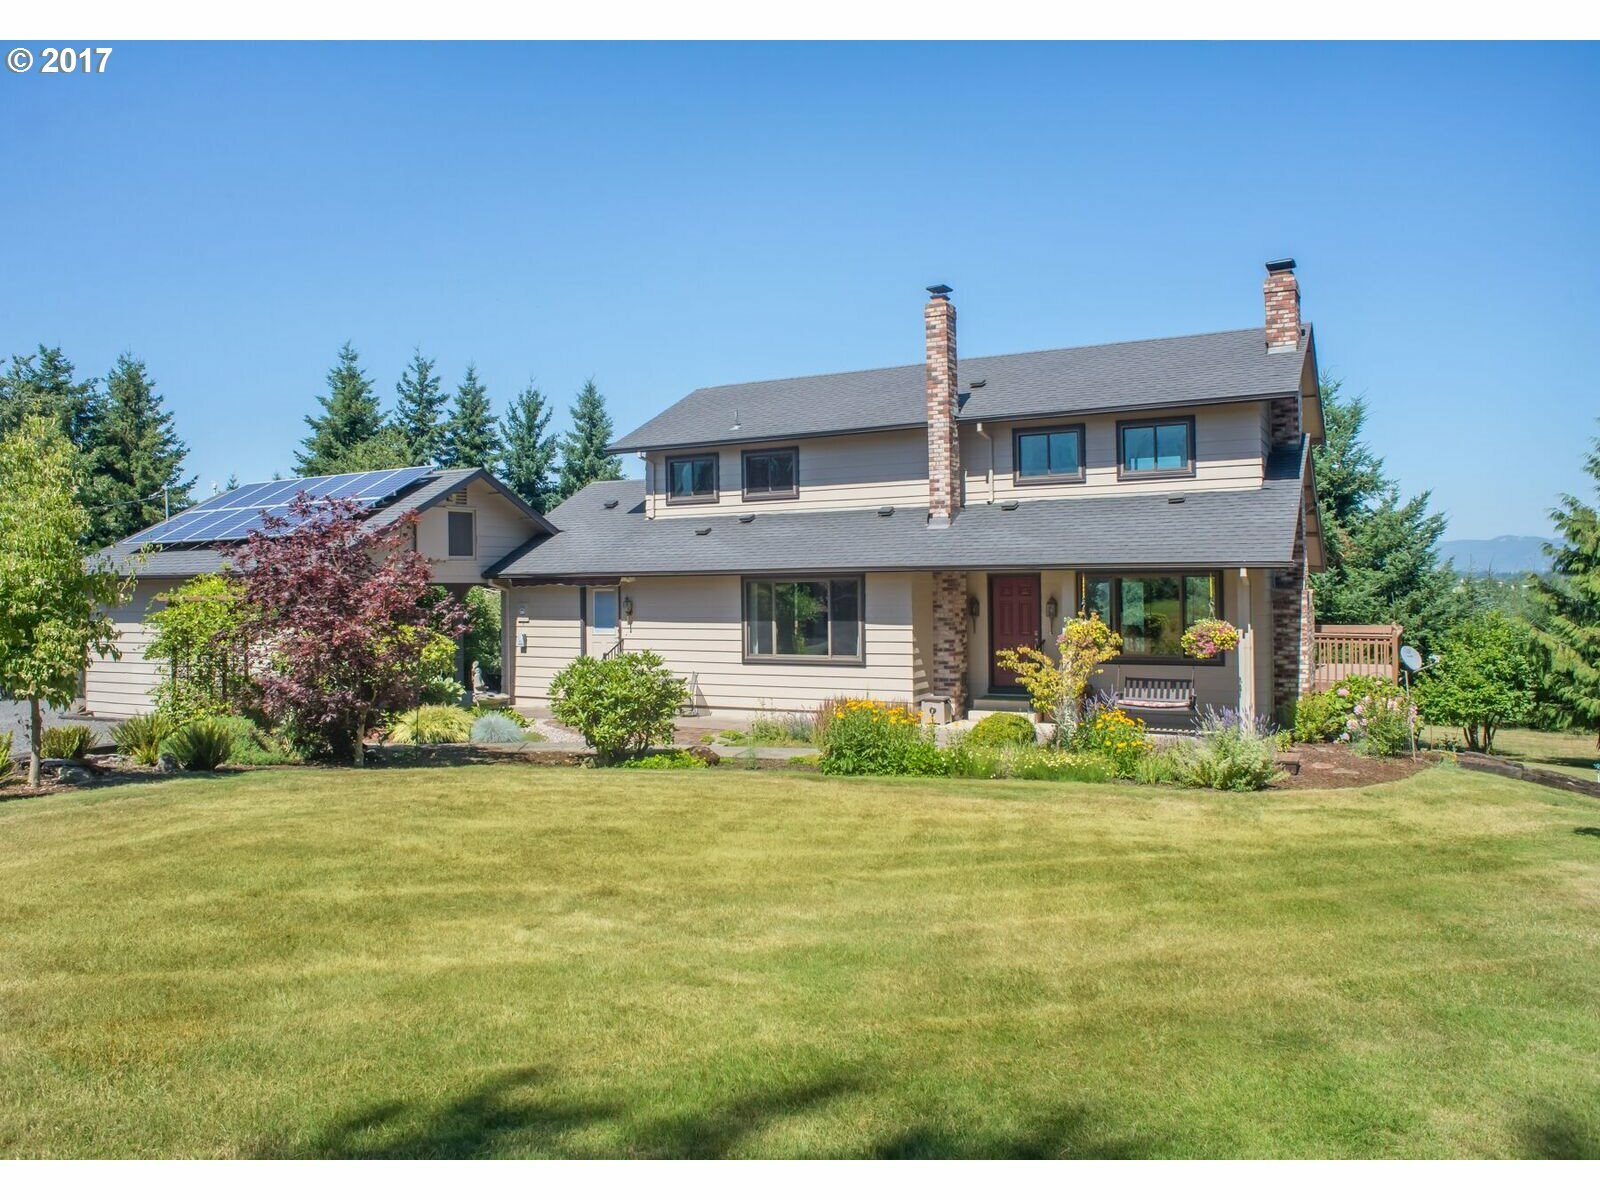 87829 Green Hill Rd, Eugene, OR - USA (photo 1)